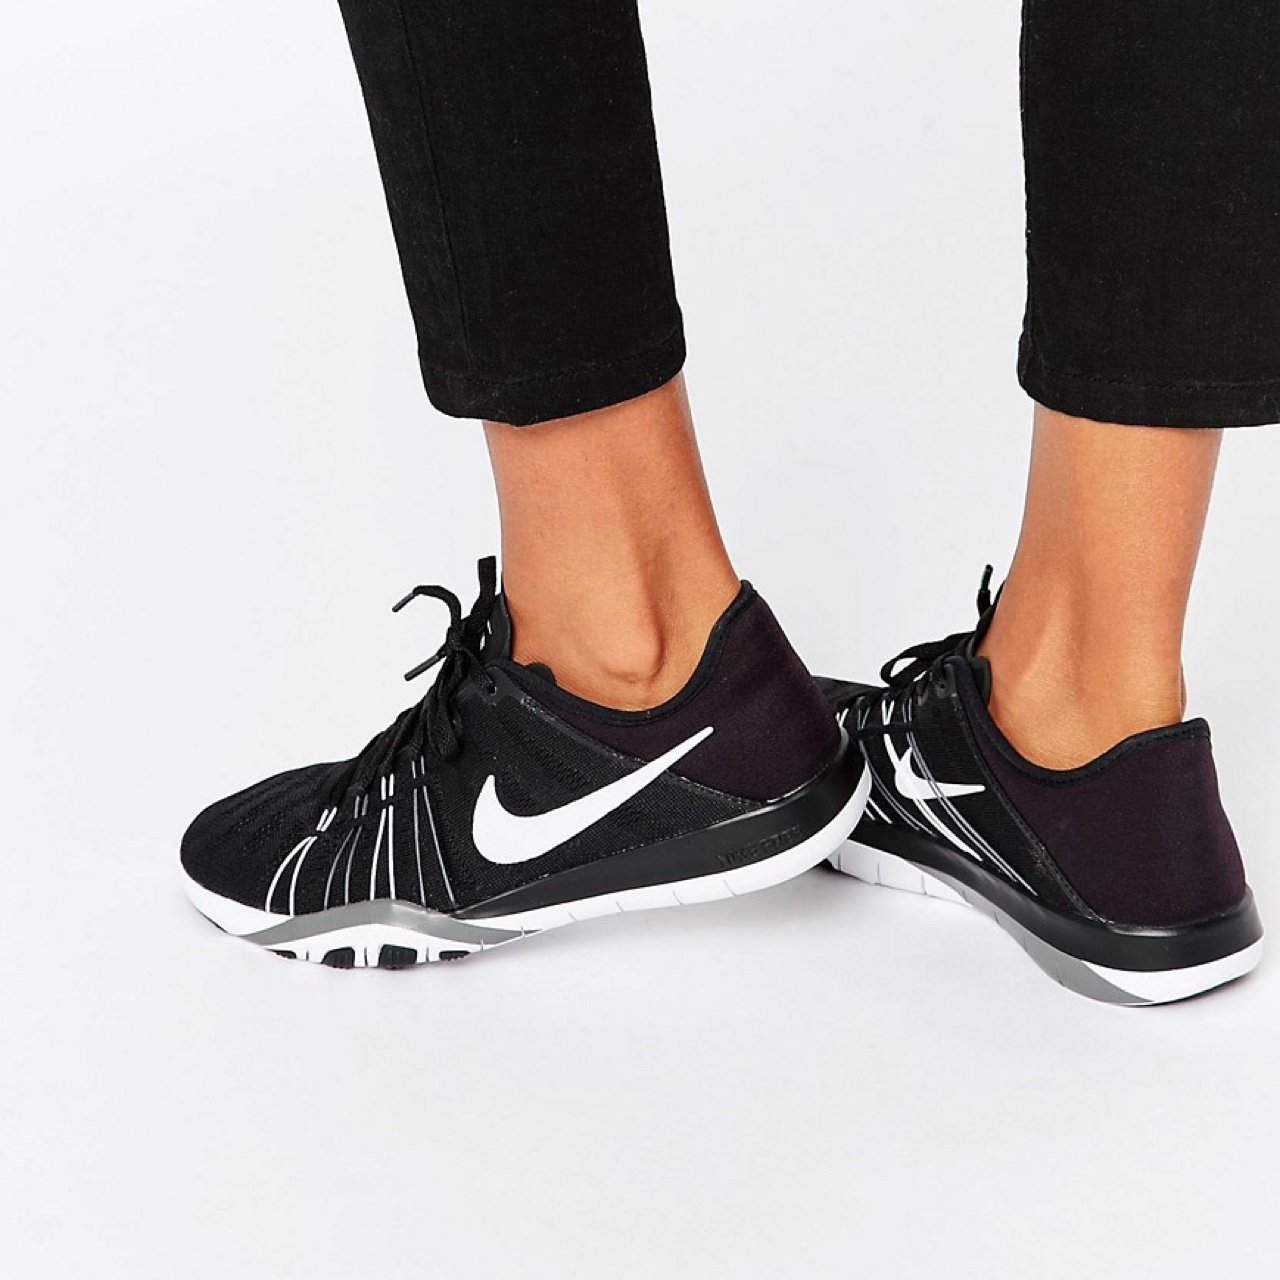 1dc58b3752e4b Nike Black and White Free TR 6 Trainers. Size 5. Worn once